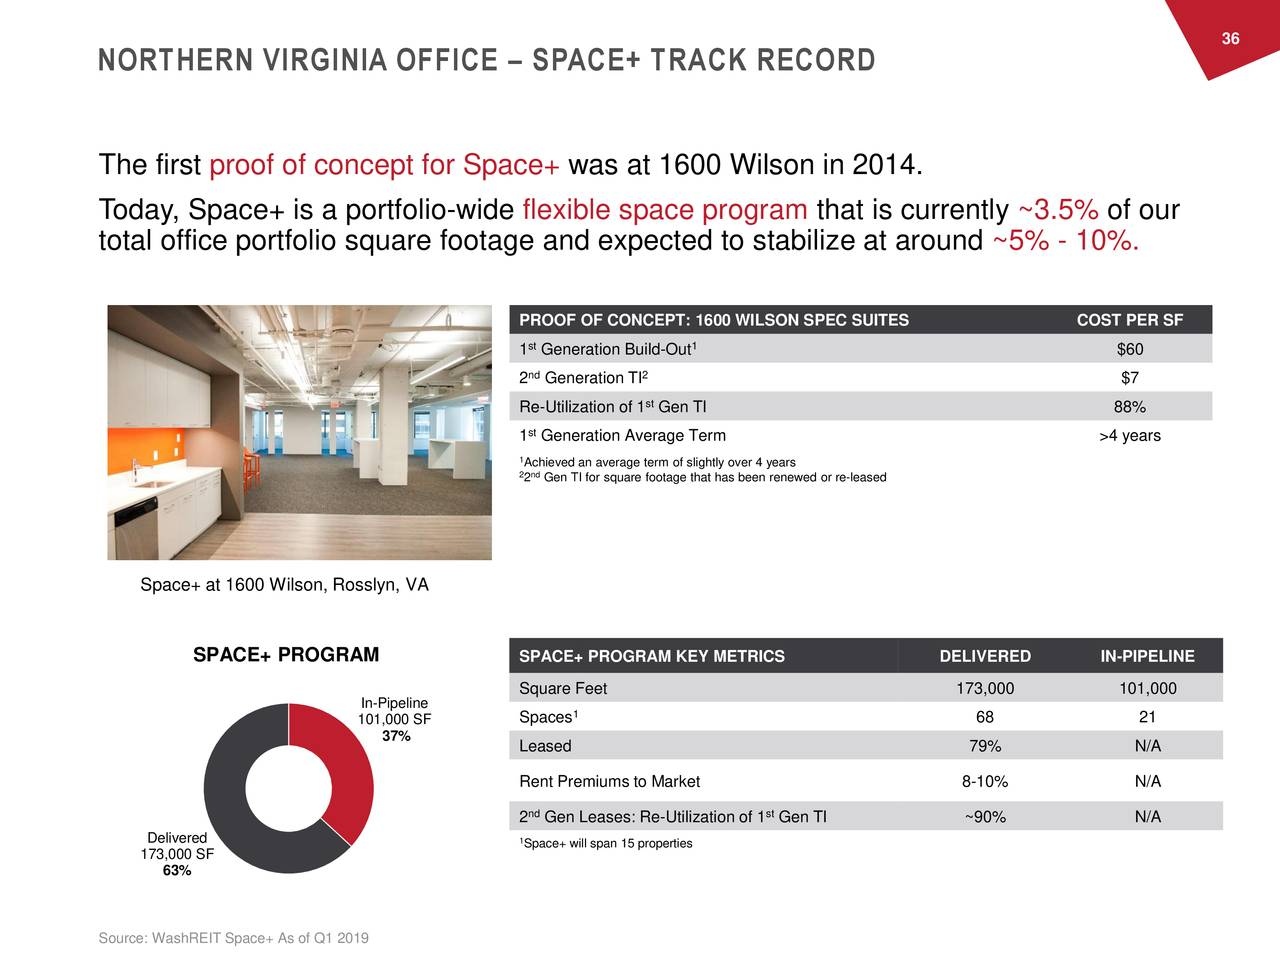 NORTHERN VIRGINIA OFFICE – SPACE+ TRACK RECORD The first proof of concept for Space+ was at 1600 Wilson in 2014. Today, Space+ is a portfolio-wide flexible space program that is currently ~3.5% of our total office portfolio square footage and expected to stabilize at around ~5% - 10%. PROOF OF CONCEPT: 1600 WILSON SPEC SUITES COST PER SF 1 Generation Build-Out1 $60 2ndGeneration TI2 $7 Re-Utilization of 1 Gen TI 88% 1 Generation Average Term >4 years 1 2 ndieved an average term of slightly over 4 years 2 Gen TI for square footage that has been renewed or re-leased Space+ at 1600 Wilson, Rosslyn, VA SPACE+ PROGRAM SPACE+ PROGRAM KEY METRICS DELIVERED IN-PIPELINE In-Pipeline Square Feet 173,000 101,000 Spaces 1 68 21 101,000 SF 37% Leased 79% N/A Rent Premiums to Market 8-10% N/A 2ndGen Leases: Re-Utilization of 1 Gen TI ~90% N/A Delivered 1 173,000 SF Space+ will span 15 properties 63% Source: WashREIT Space+ As of Q1 2019